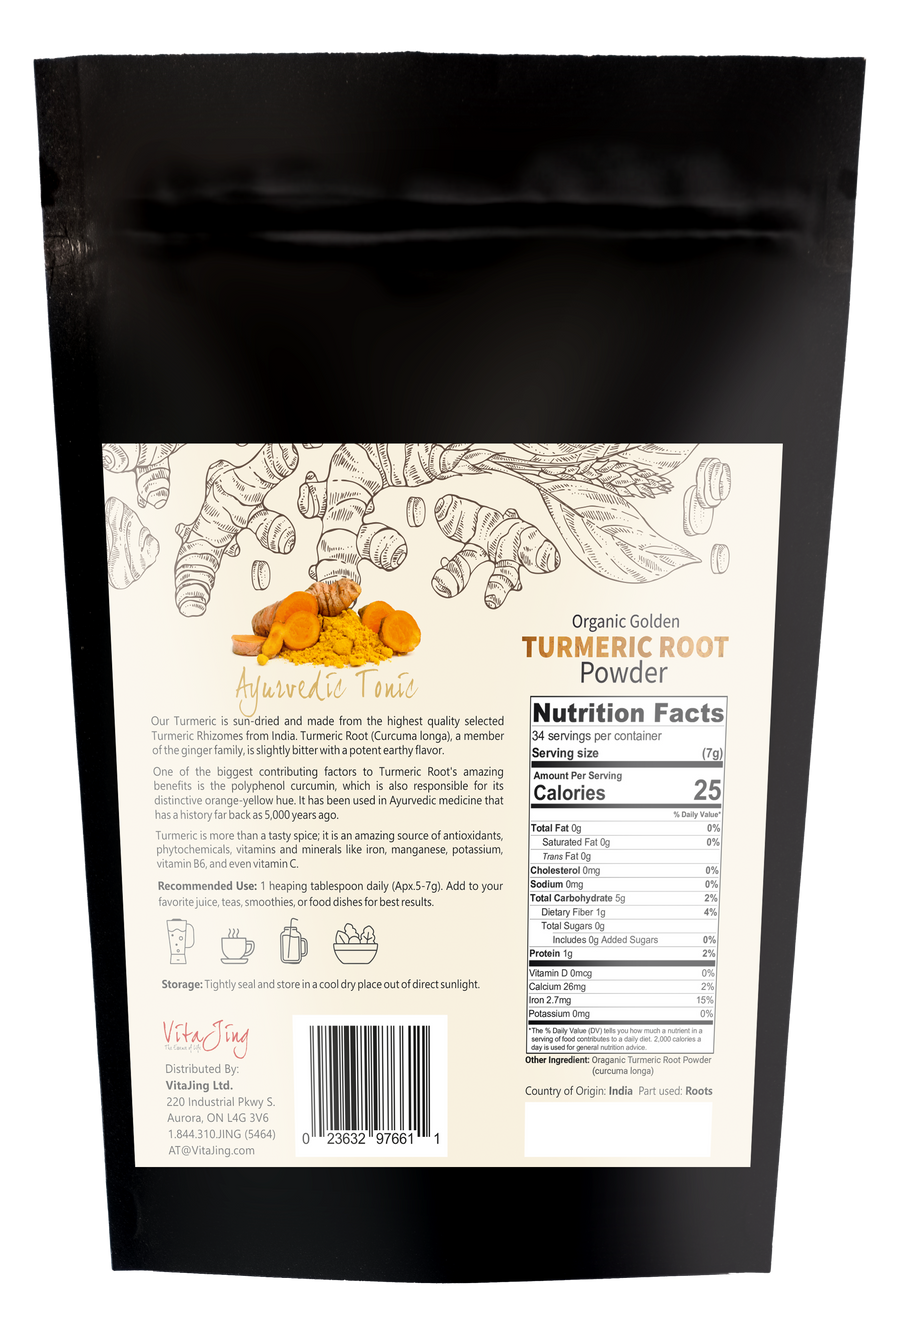 Organic Golden Turmeric Powder